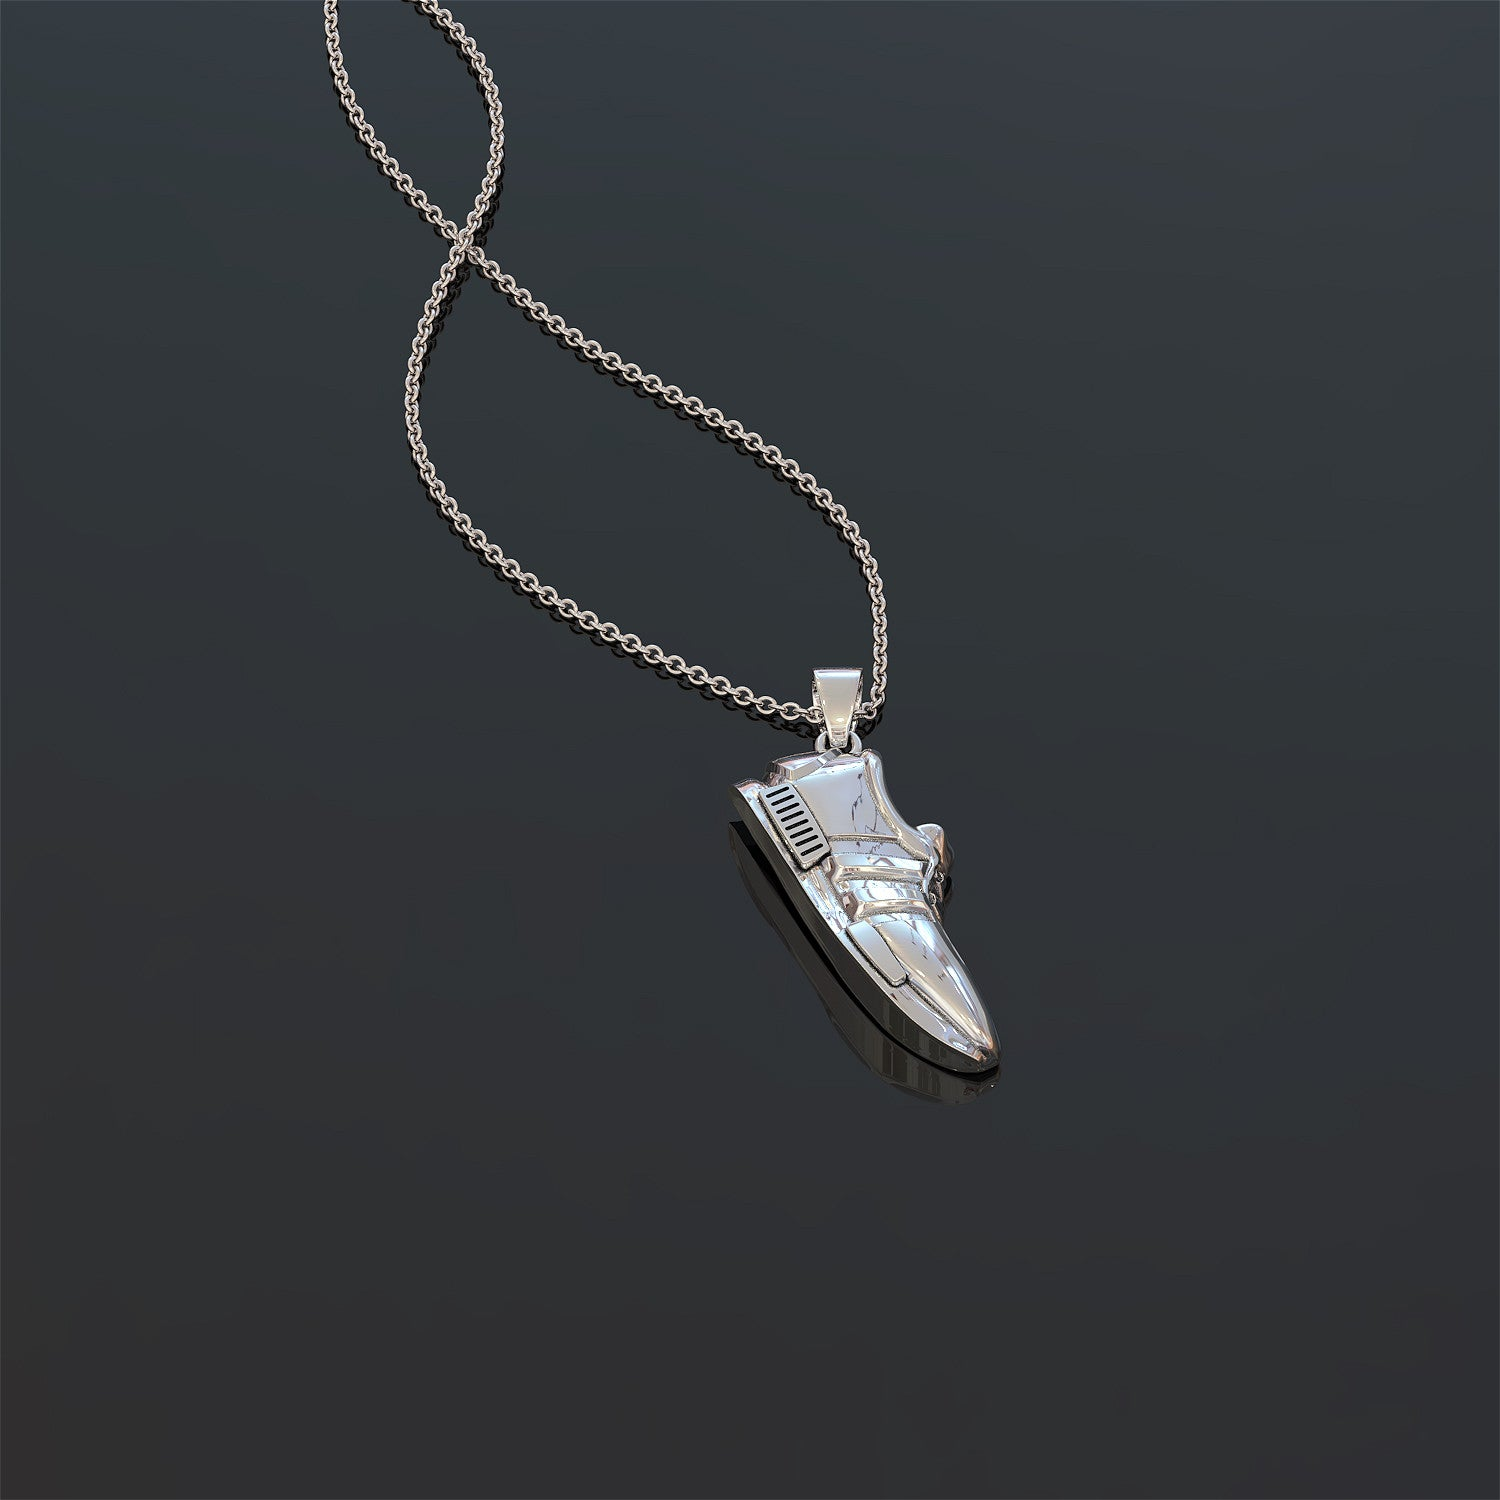 Sneaker Necklace